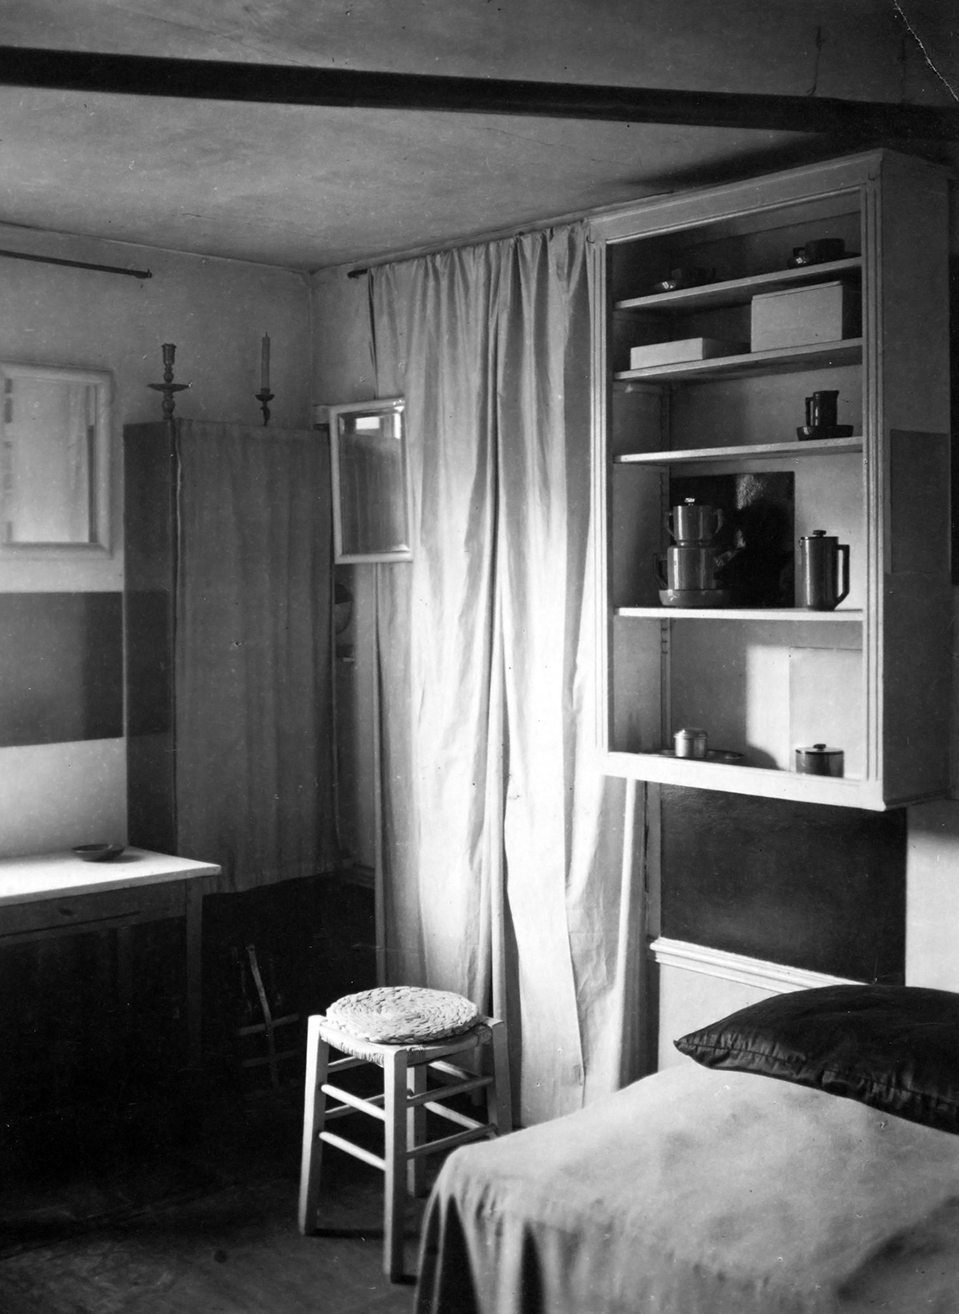 andrc3a9-kertc3a9sz-a-corner-of-mondrian_s-studio-with-bed-stool-curtain-and-mirrors-1926